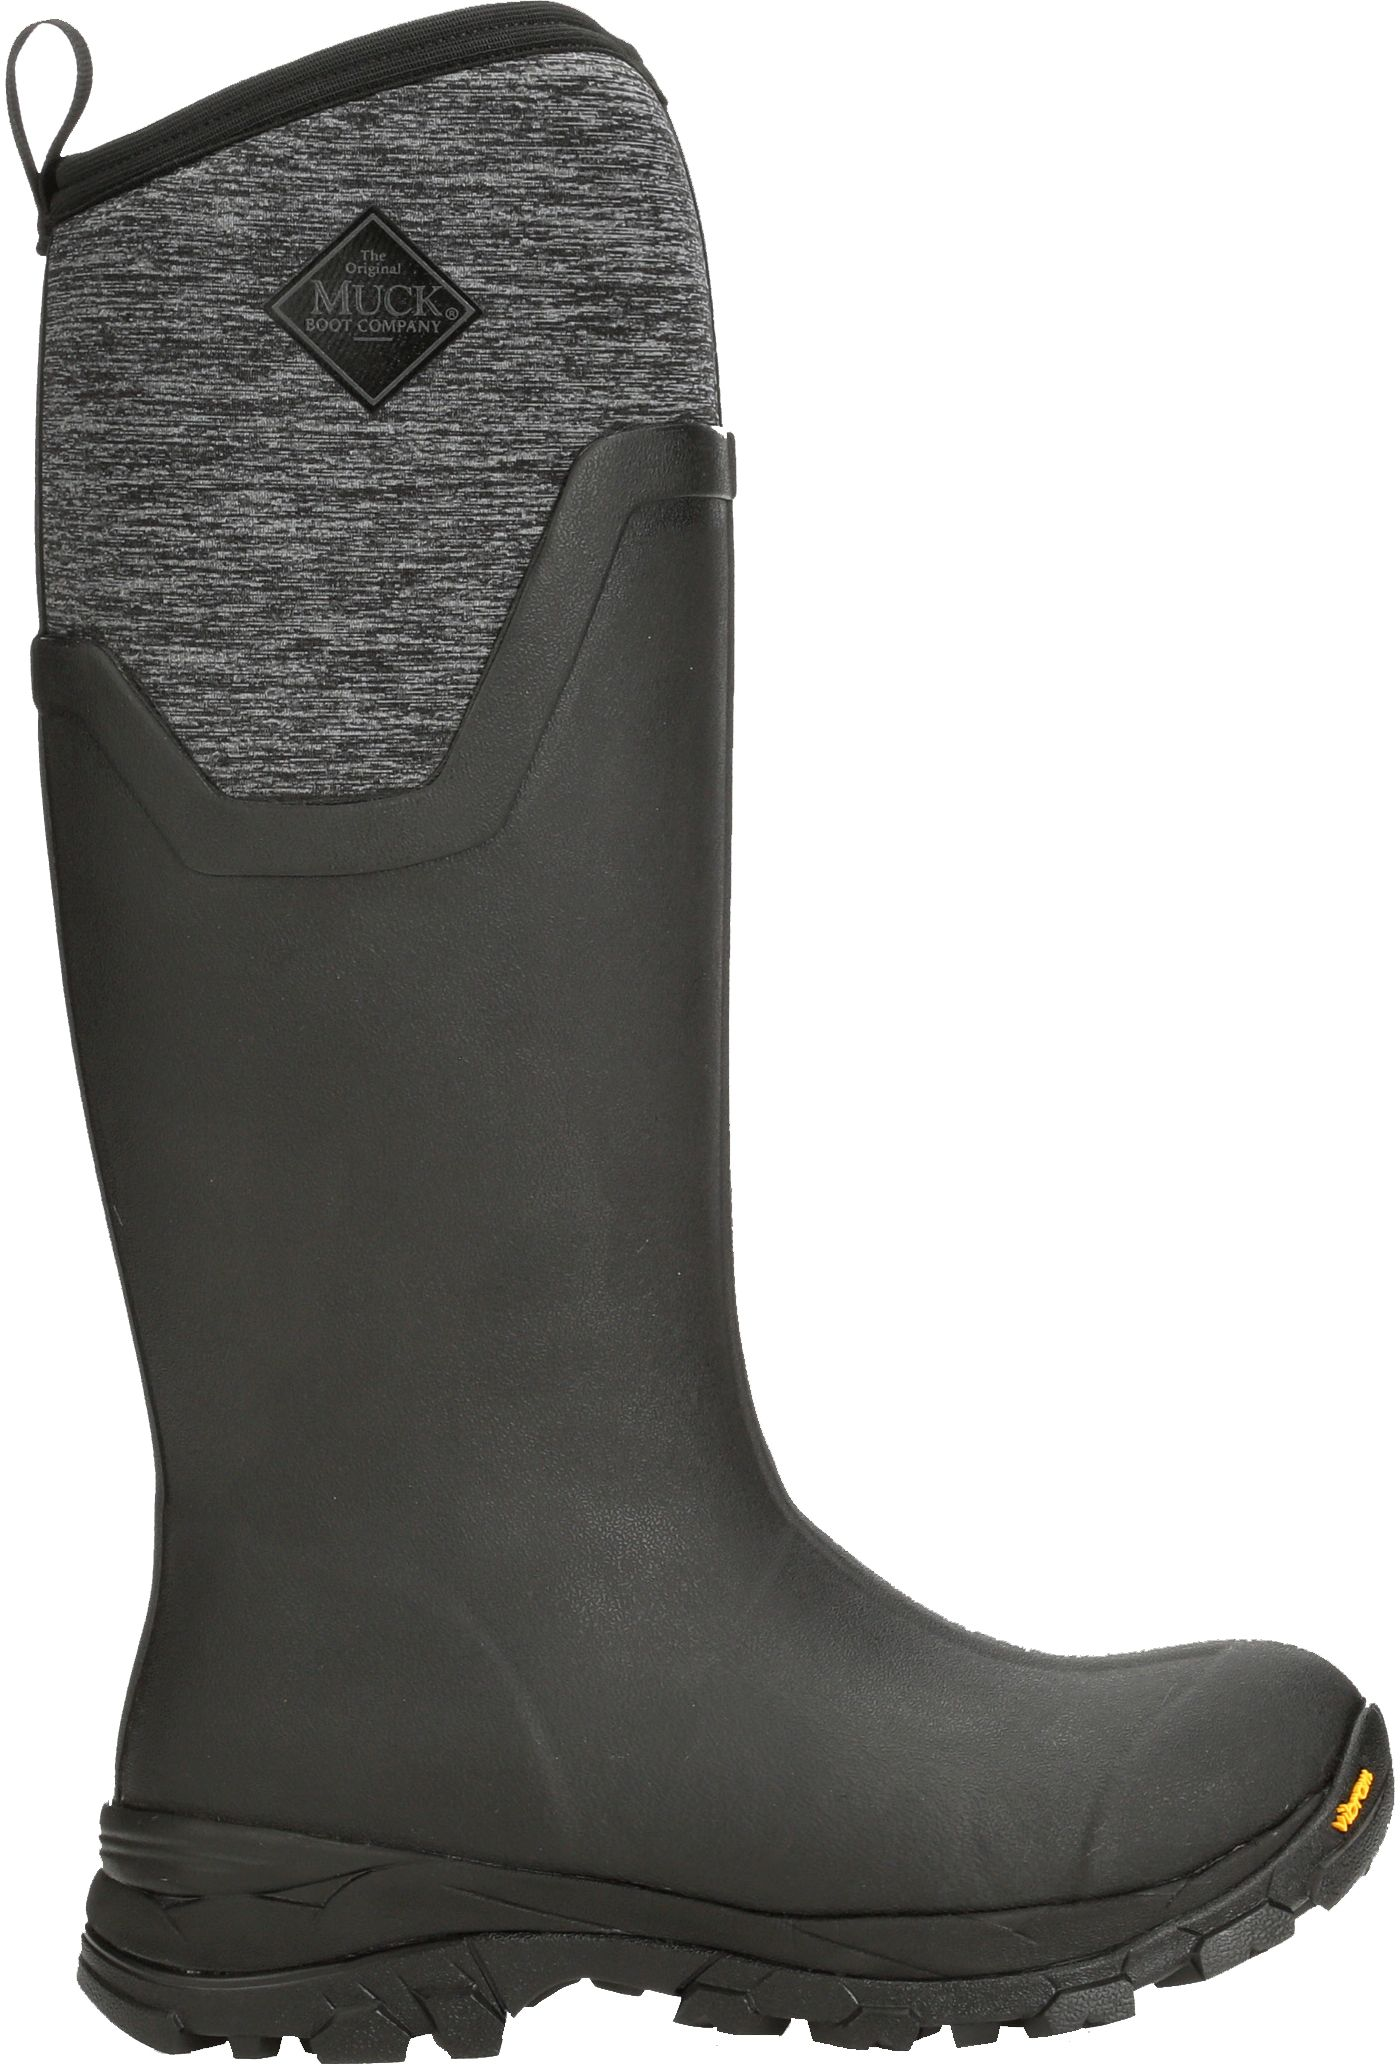 Muck Boots Women's Arctic Ice Tall Waterproof Winter Boots